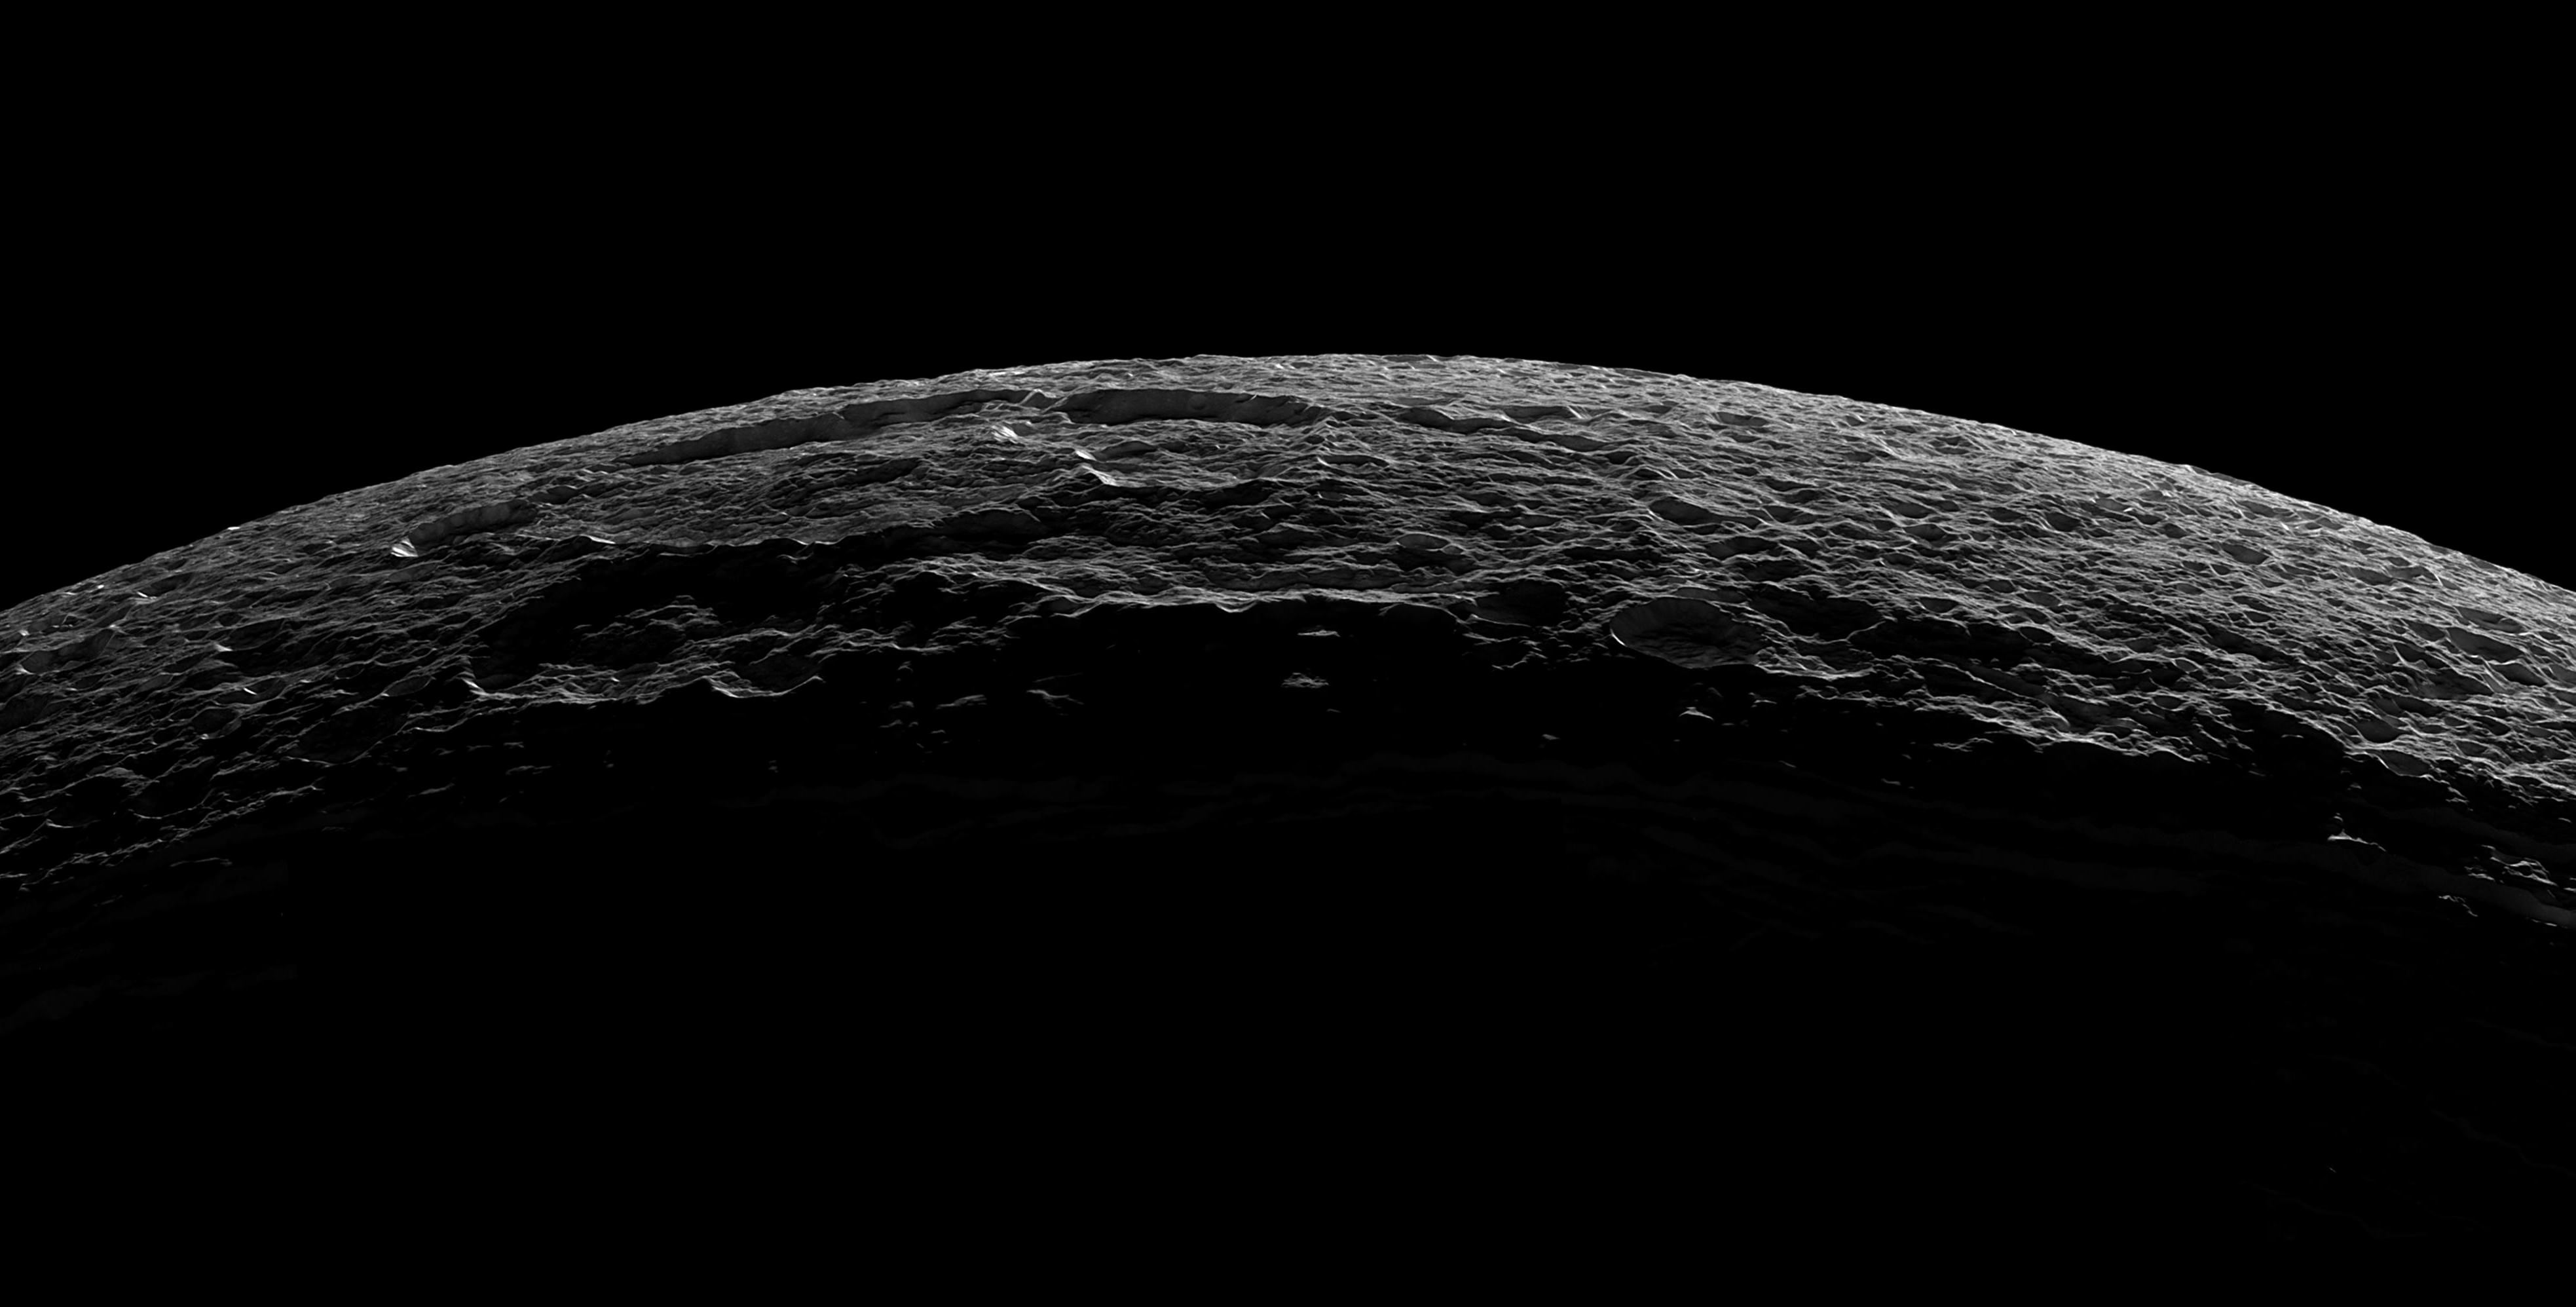 Cassini Mission Archives Universe Today To Saturn Diagram Of The Spacecraft Crescent Dione From October 11 2005 Crater Near Limb At